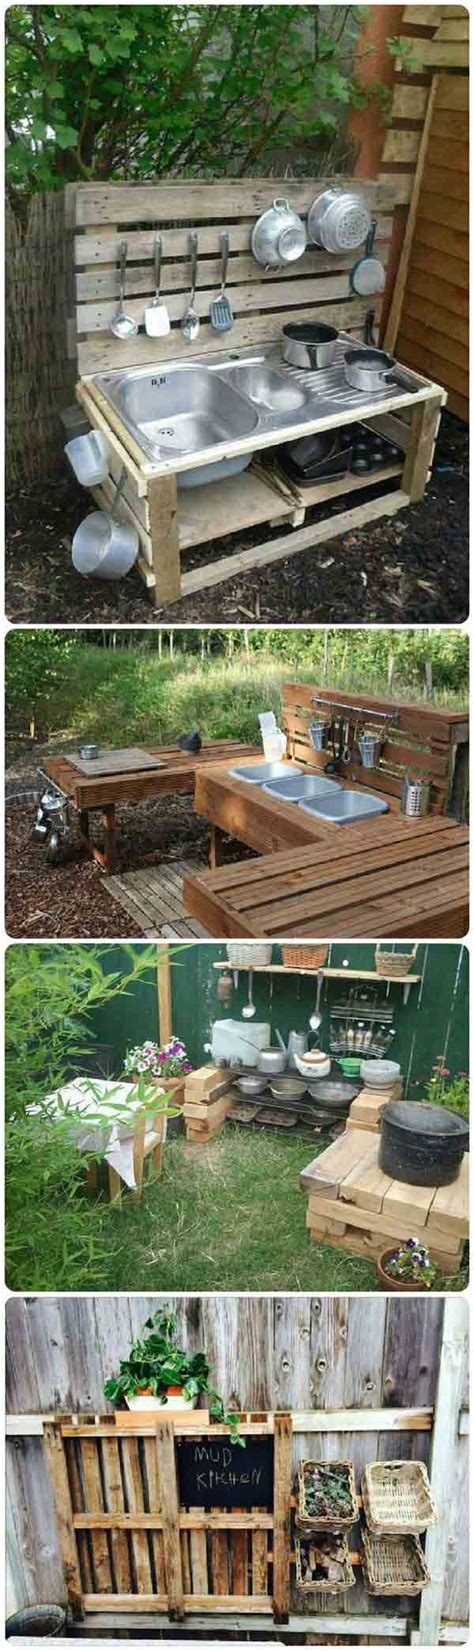 diy backyard projects 25 playful diy backyard projects to surprise your kids